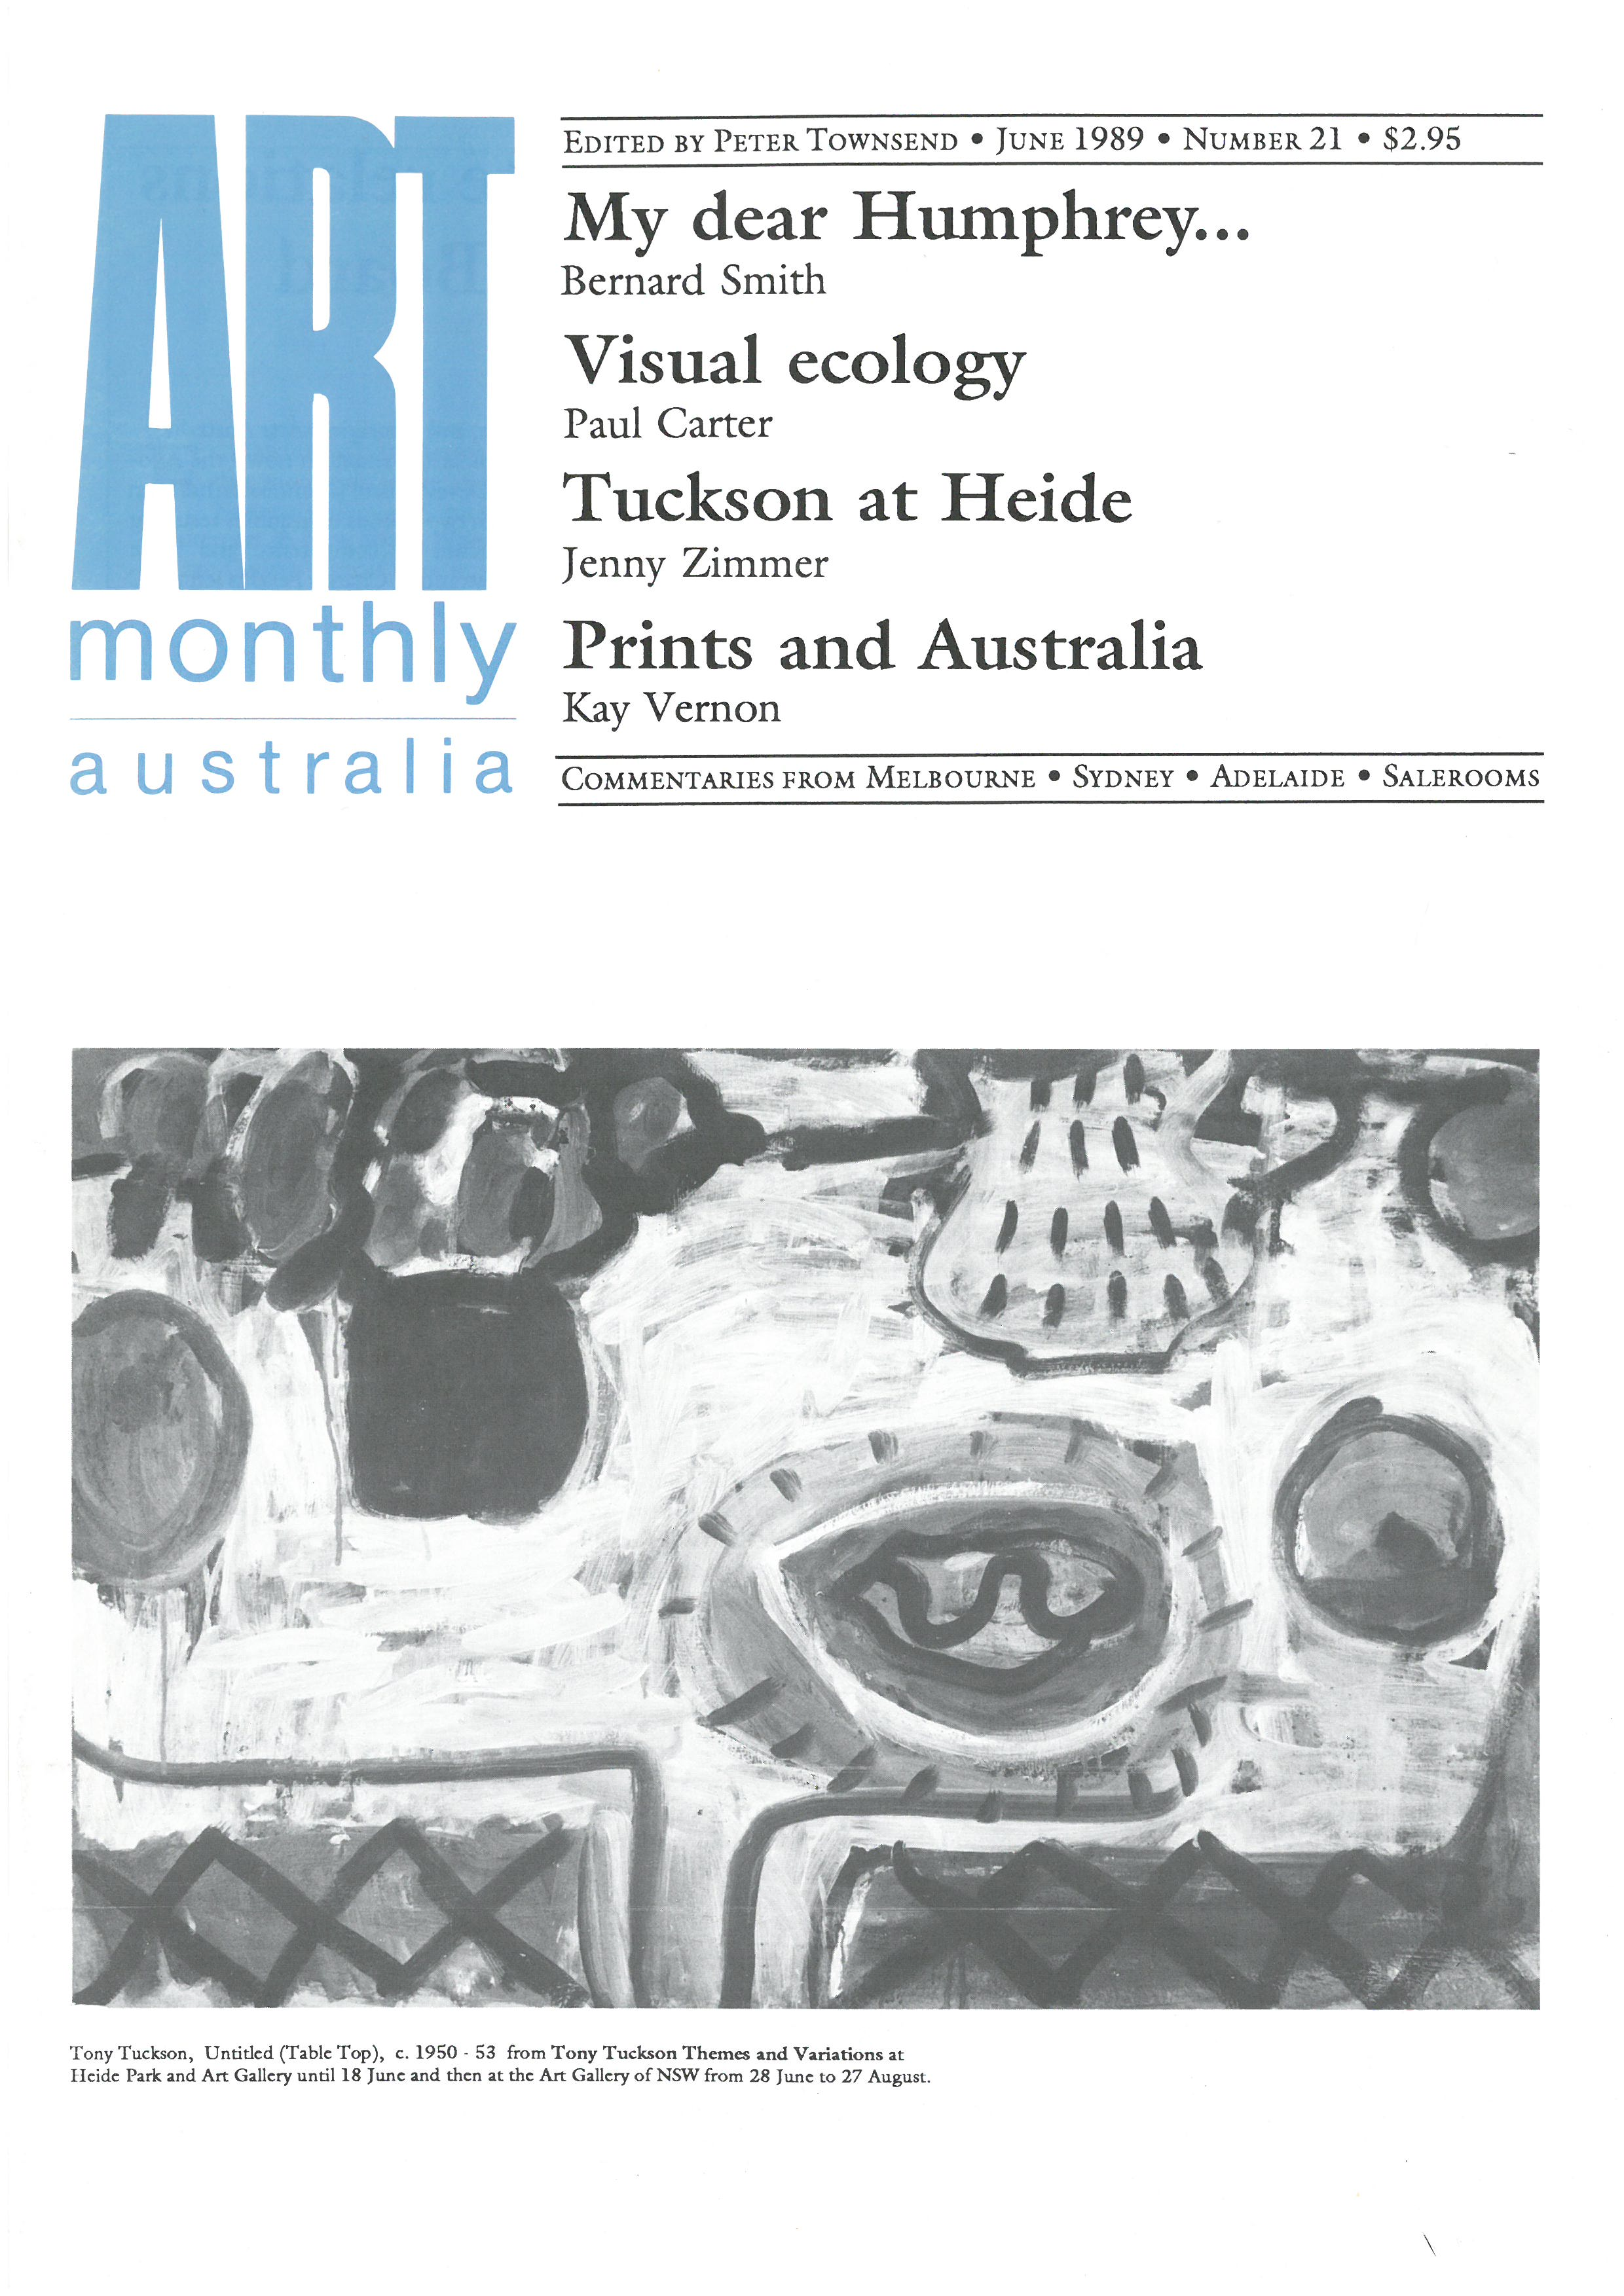 Issue 21 June 1989